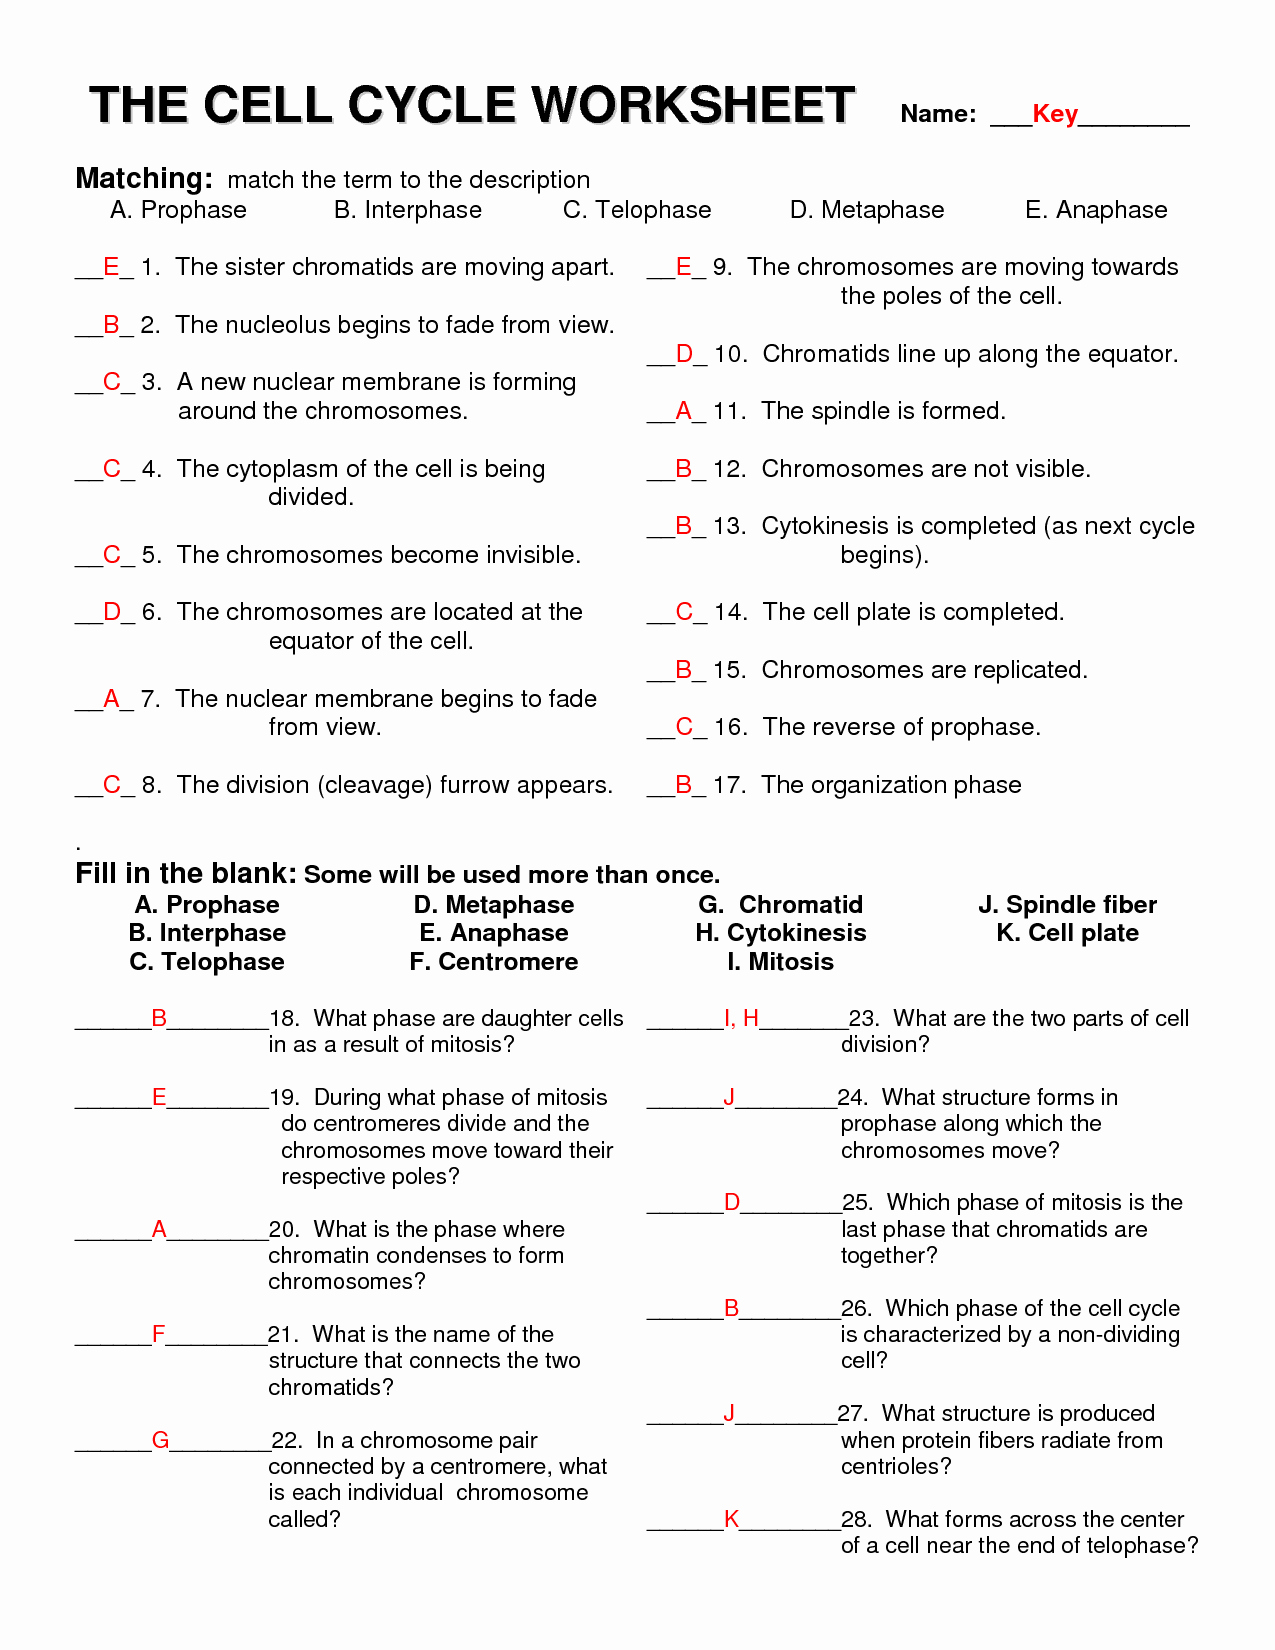 Meiosis Matching Worksheet Answer Key Best Of 13 Best Of Meiosis Matching Worksheet Cheat Sheet